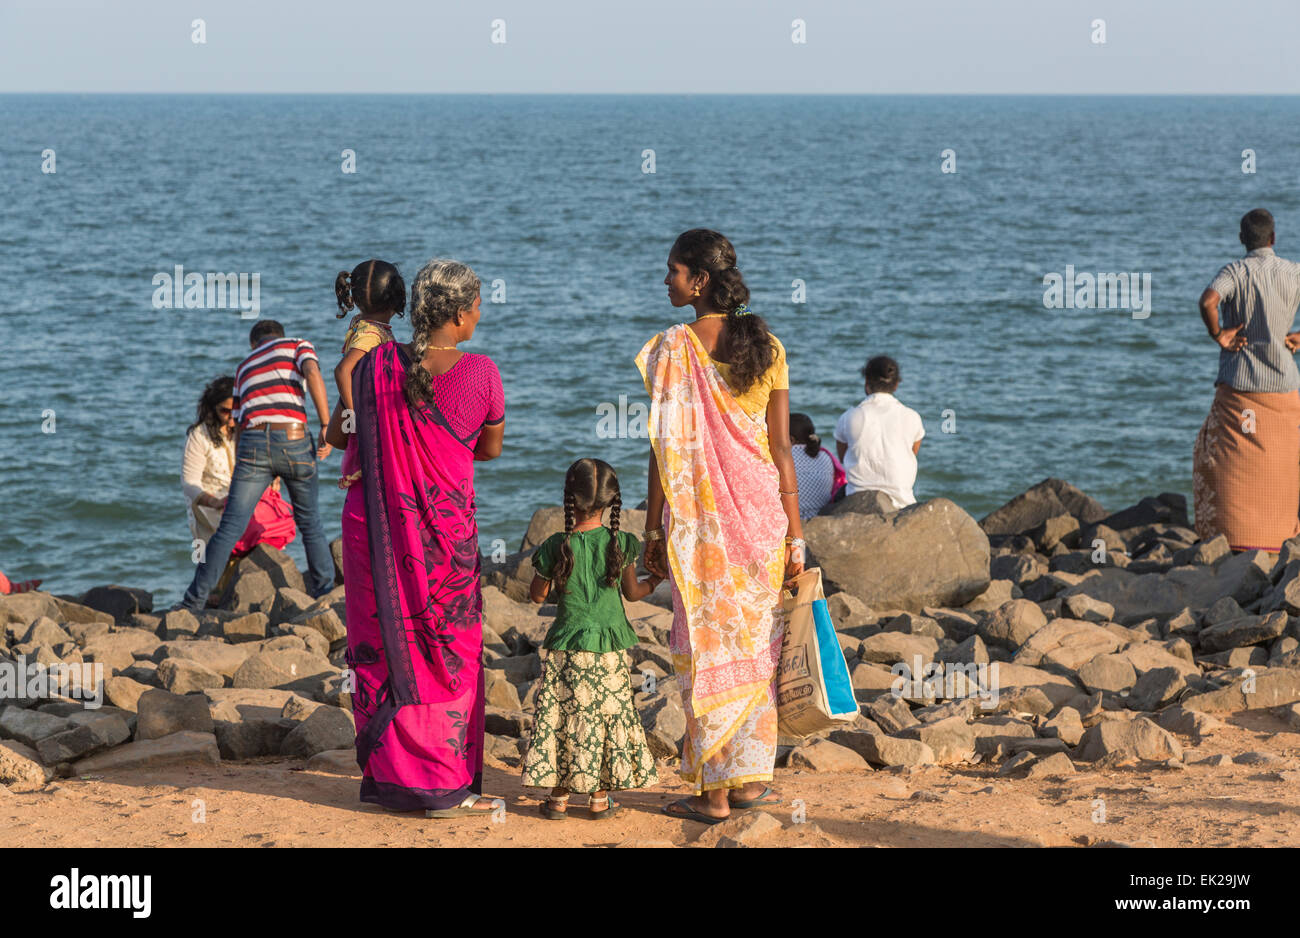 Local Indian family on the beach at Pondicherry, or Puducherry, Tamil Nadu, southern India - Stock Image